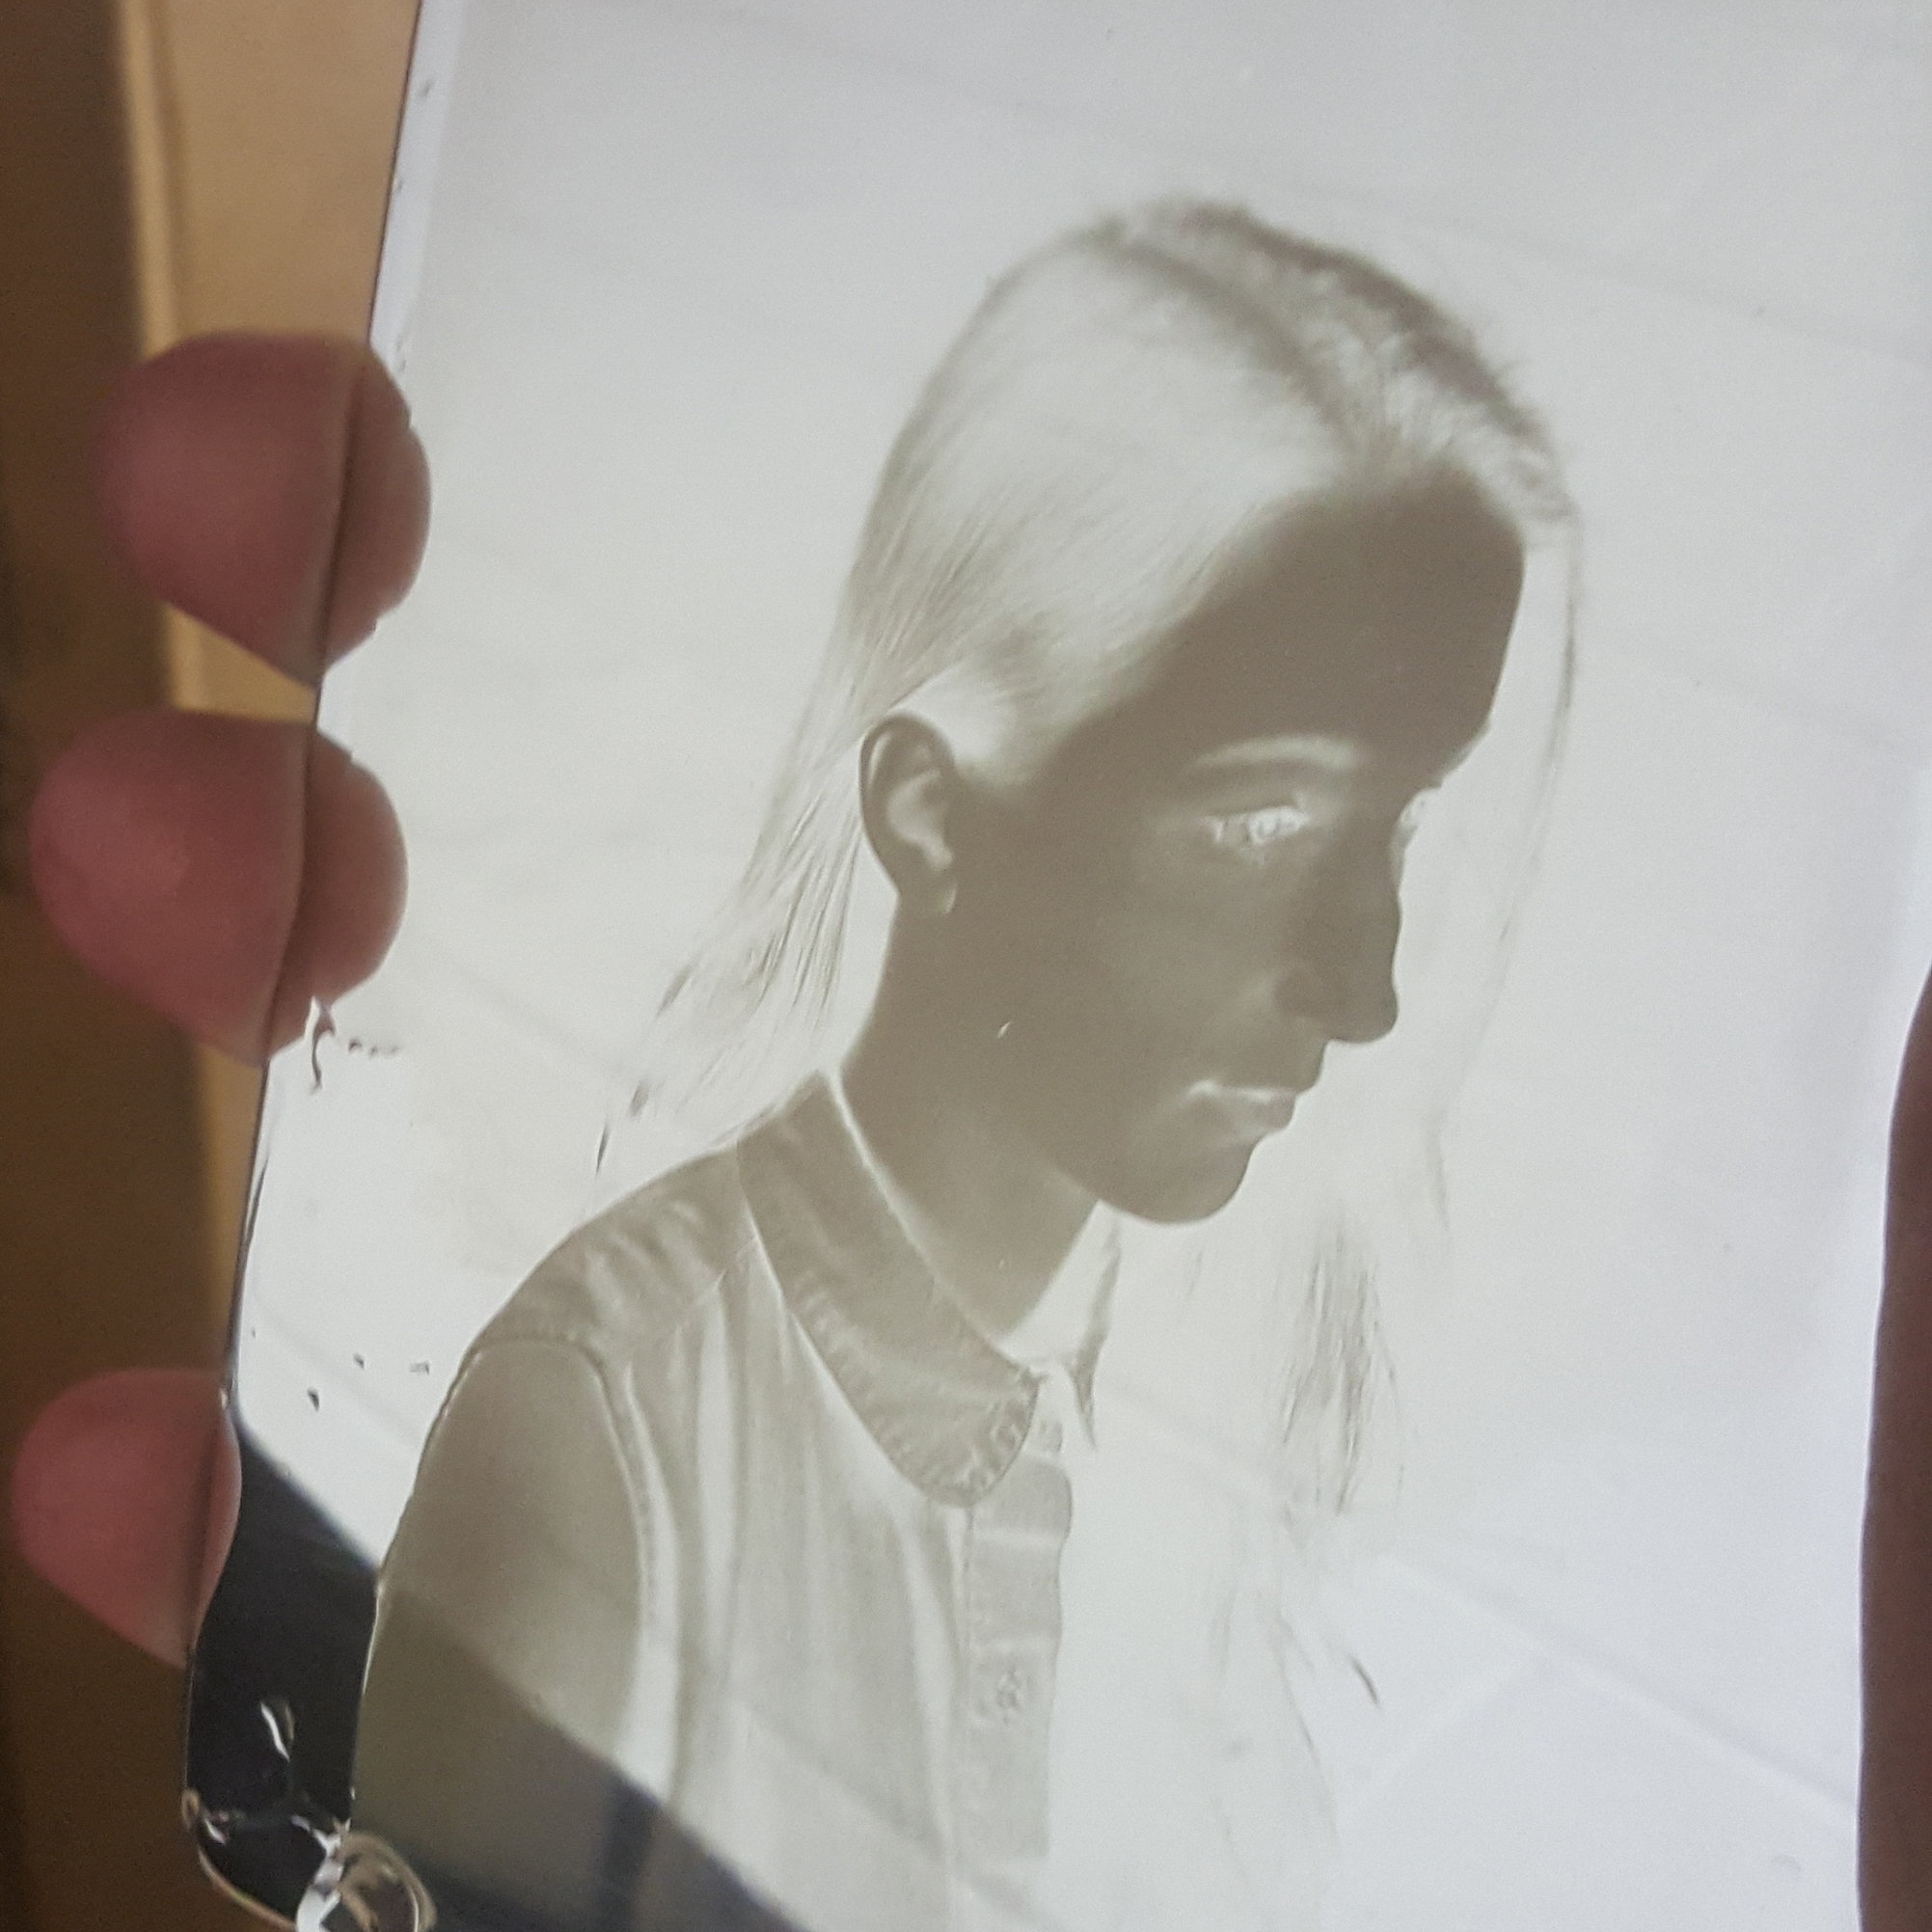 A daguerreotype's mirror surface reflecting on a white wall, which shows a Negative image.